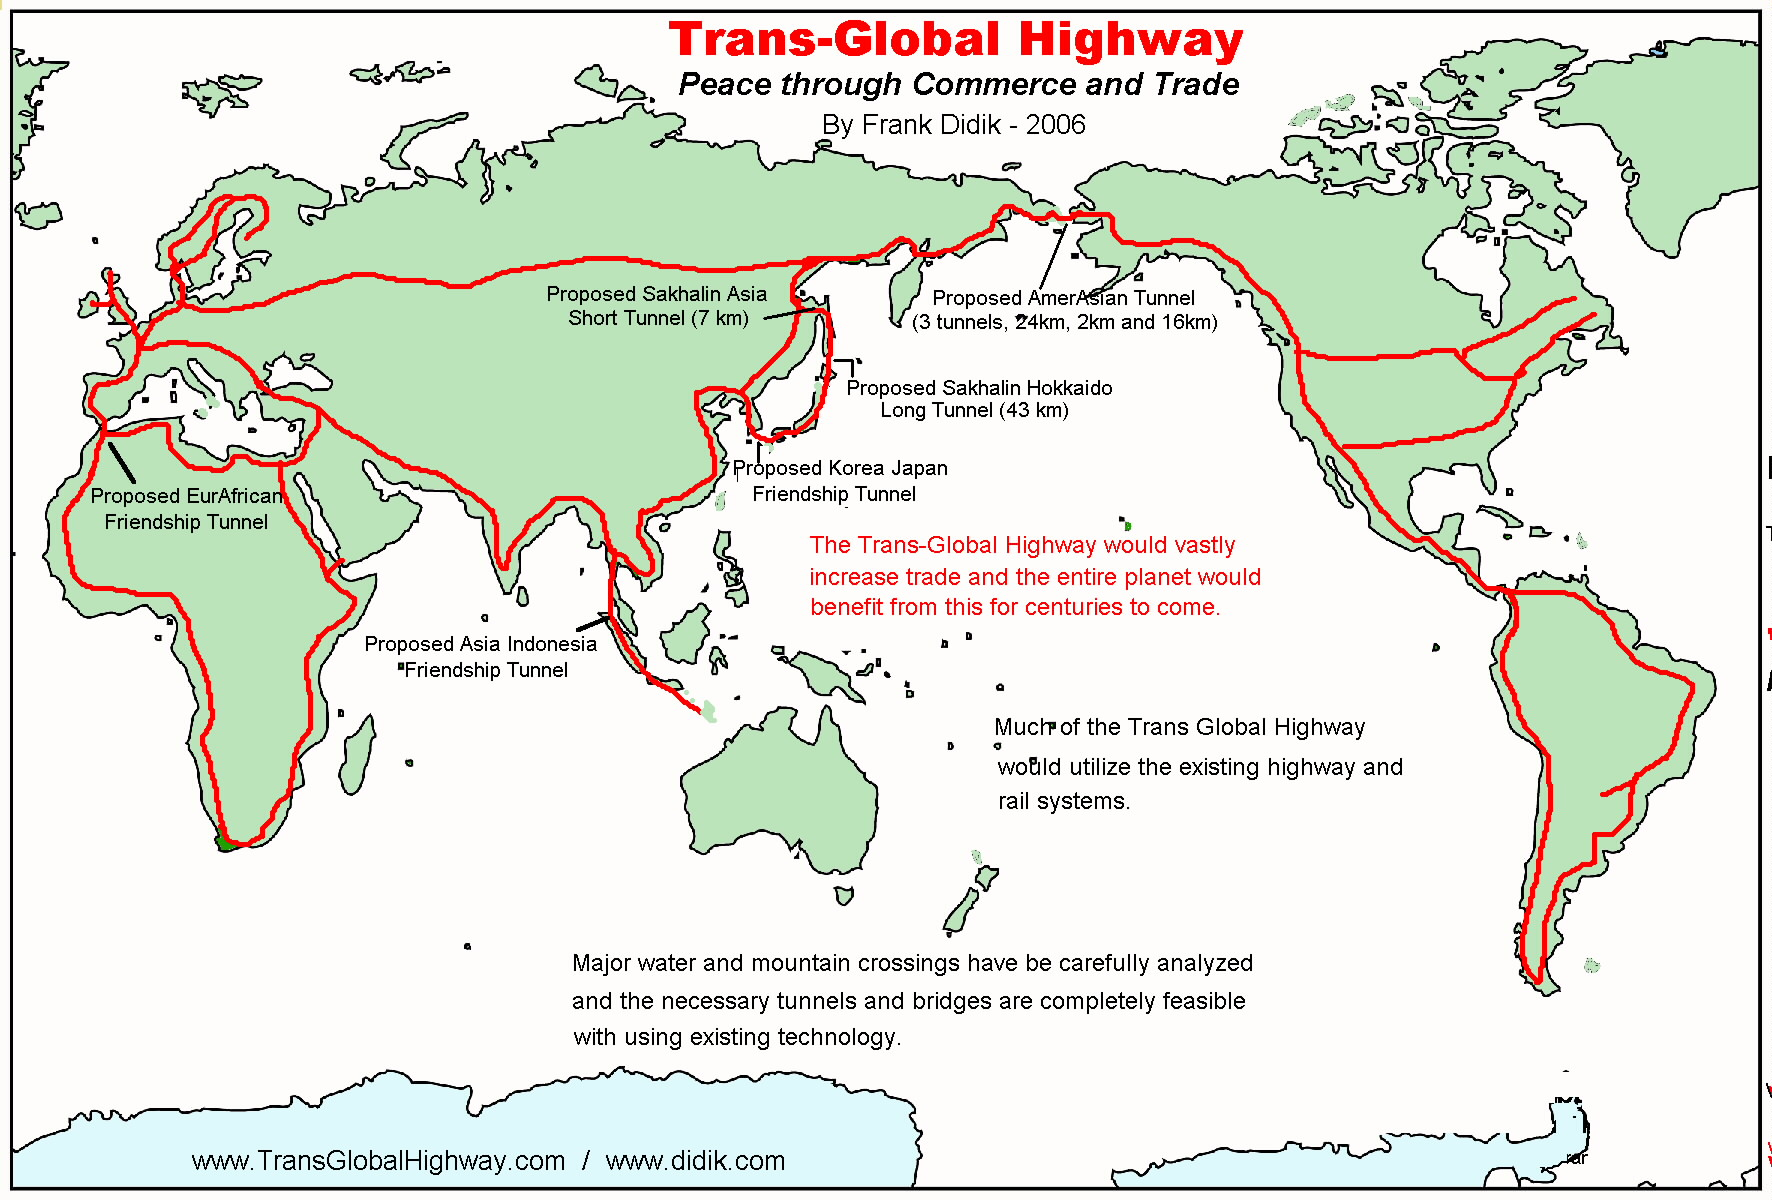 World Map Bering Strait.Trans Global Highway A Proposal By Frank X Didik May 2006